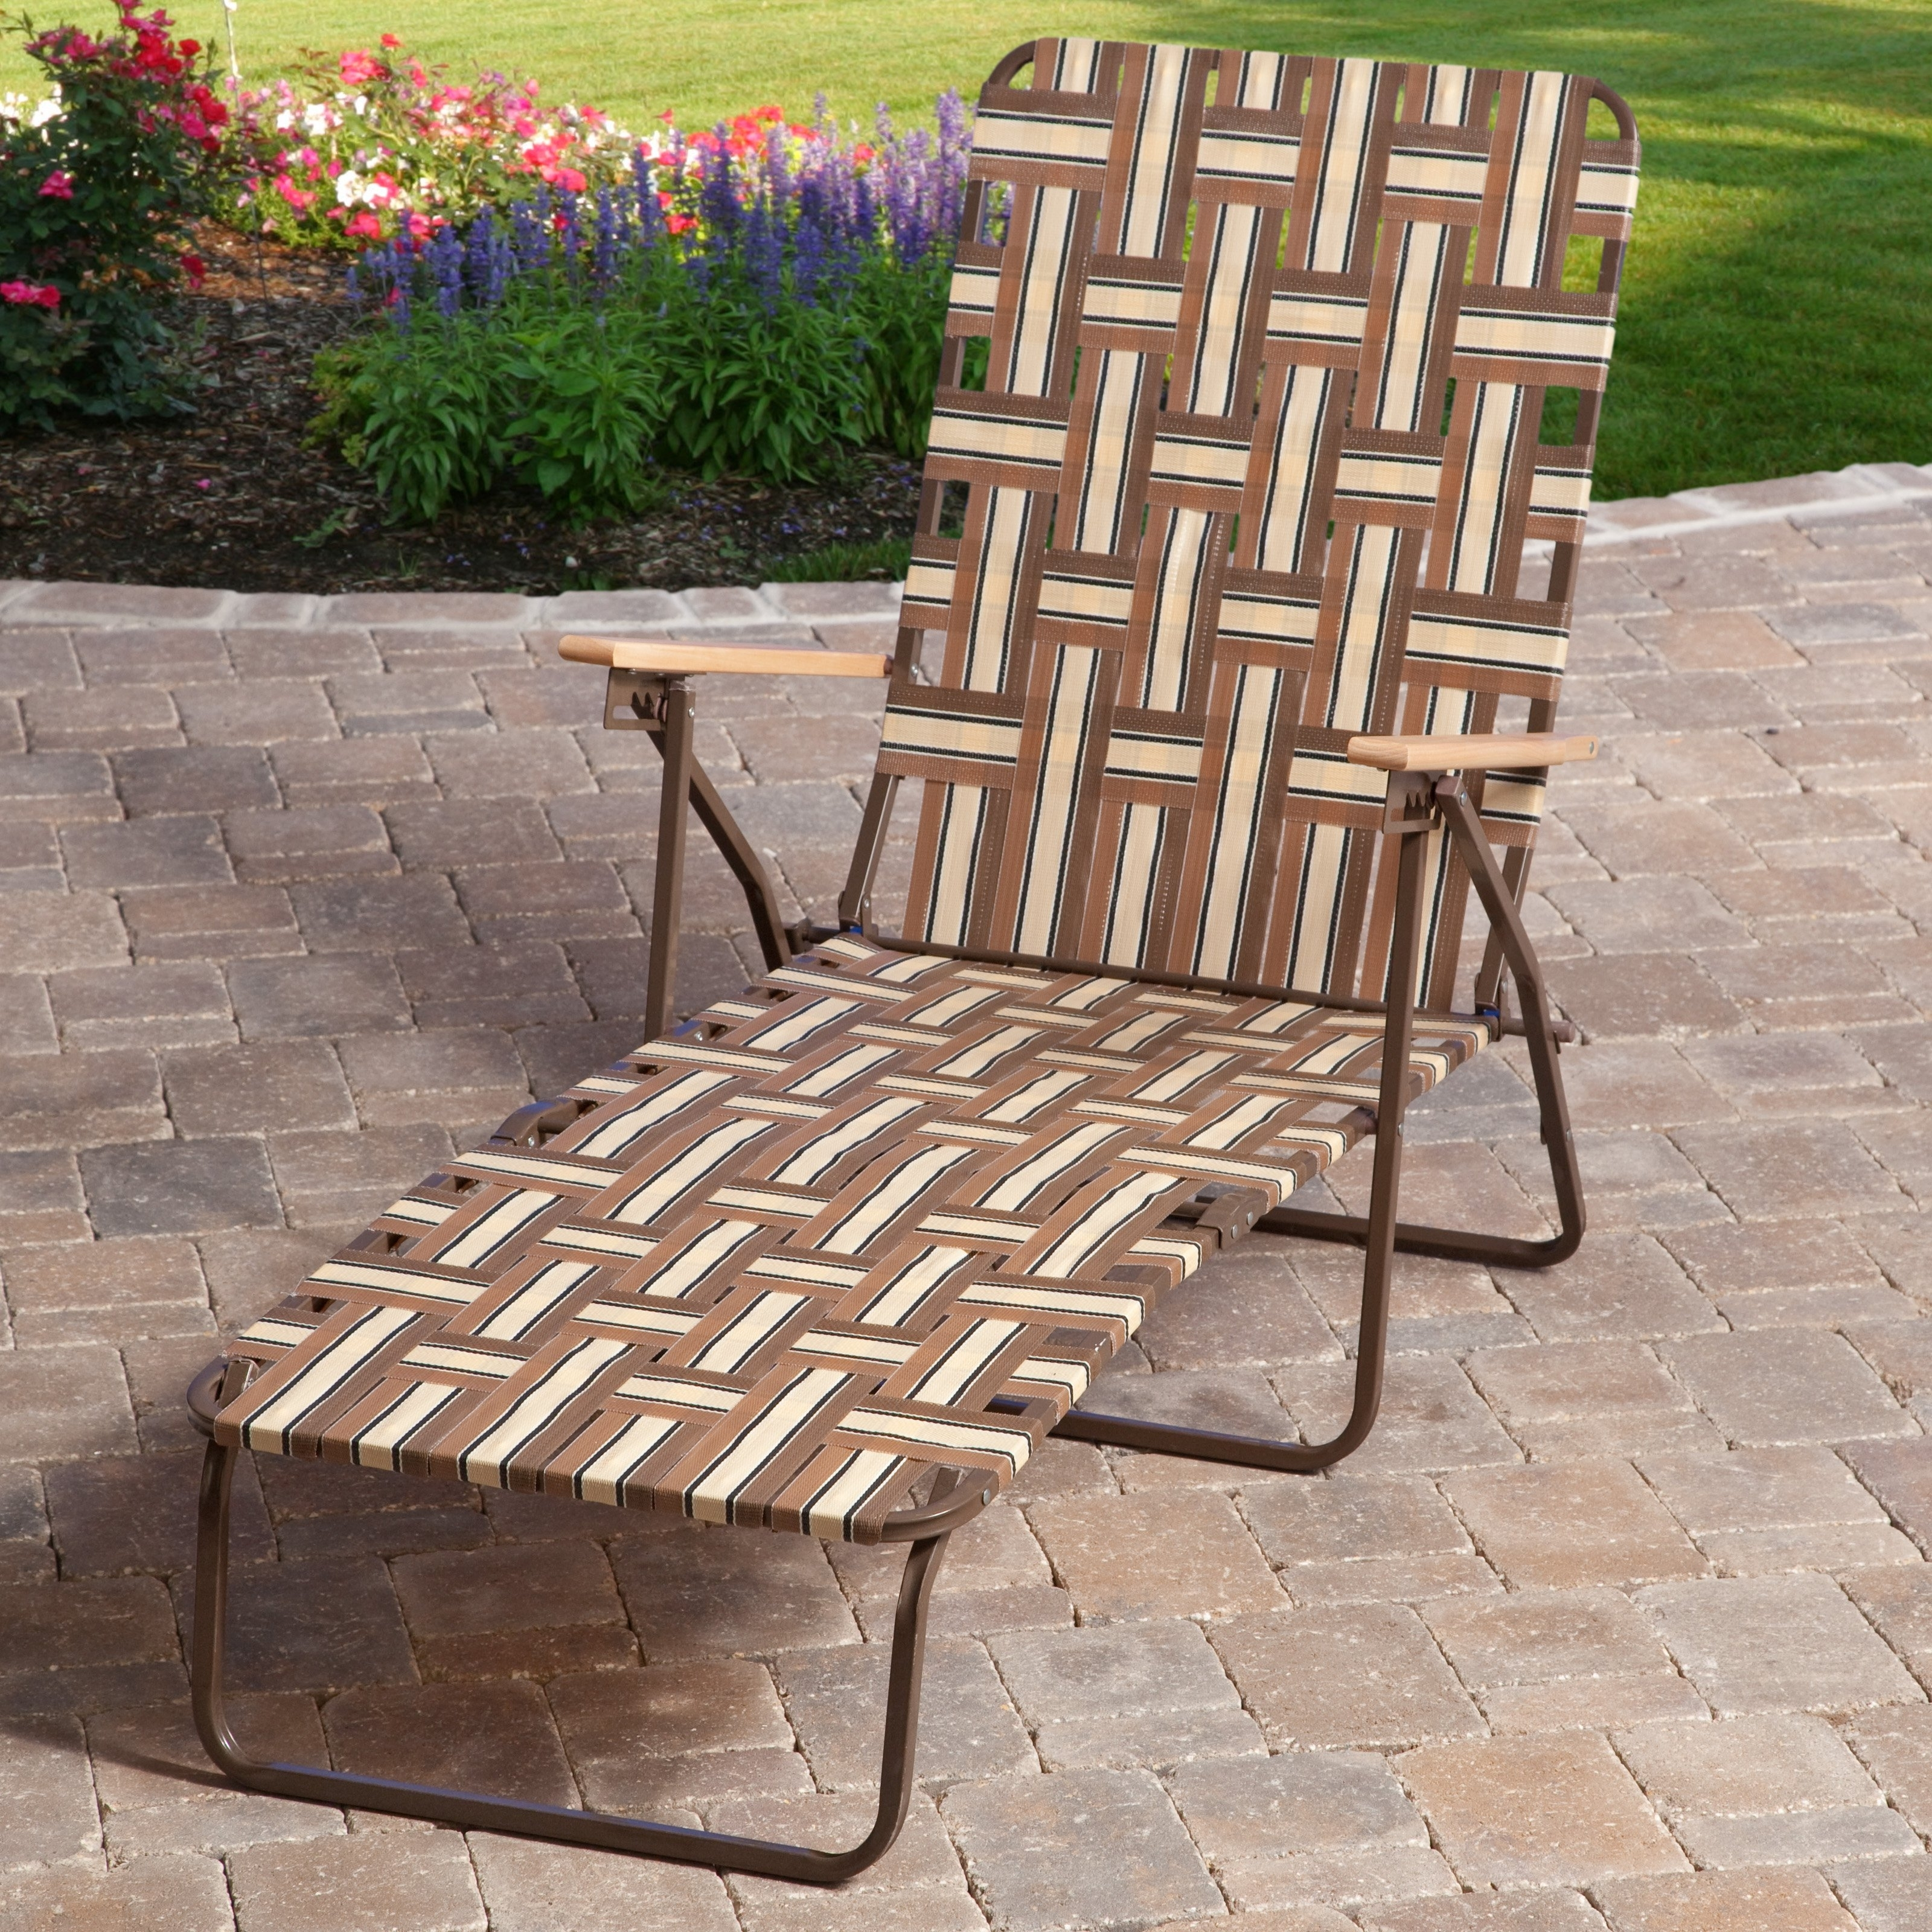 Best And Newest Rio Deluxe Folding Web Chaise Lounge – Walmart With Cheap Folding Chaise Lounge Chairs For Outdoor (View 3 of 15)